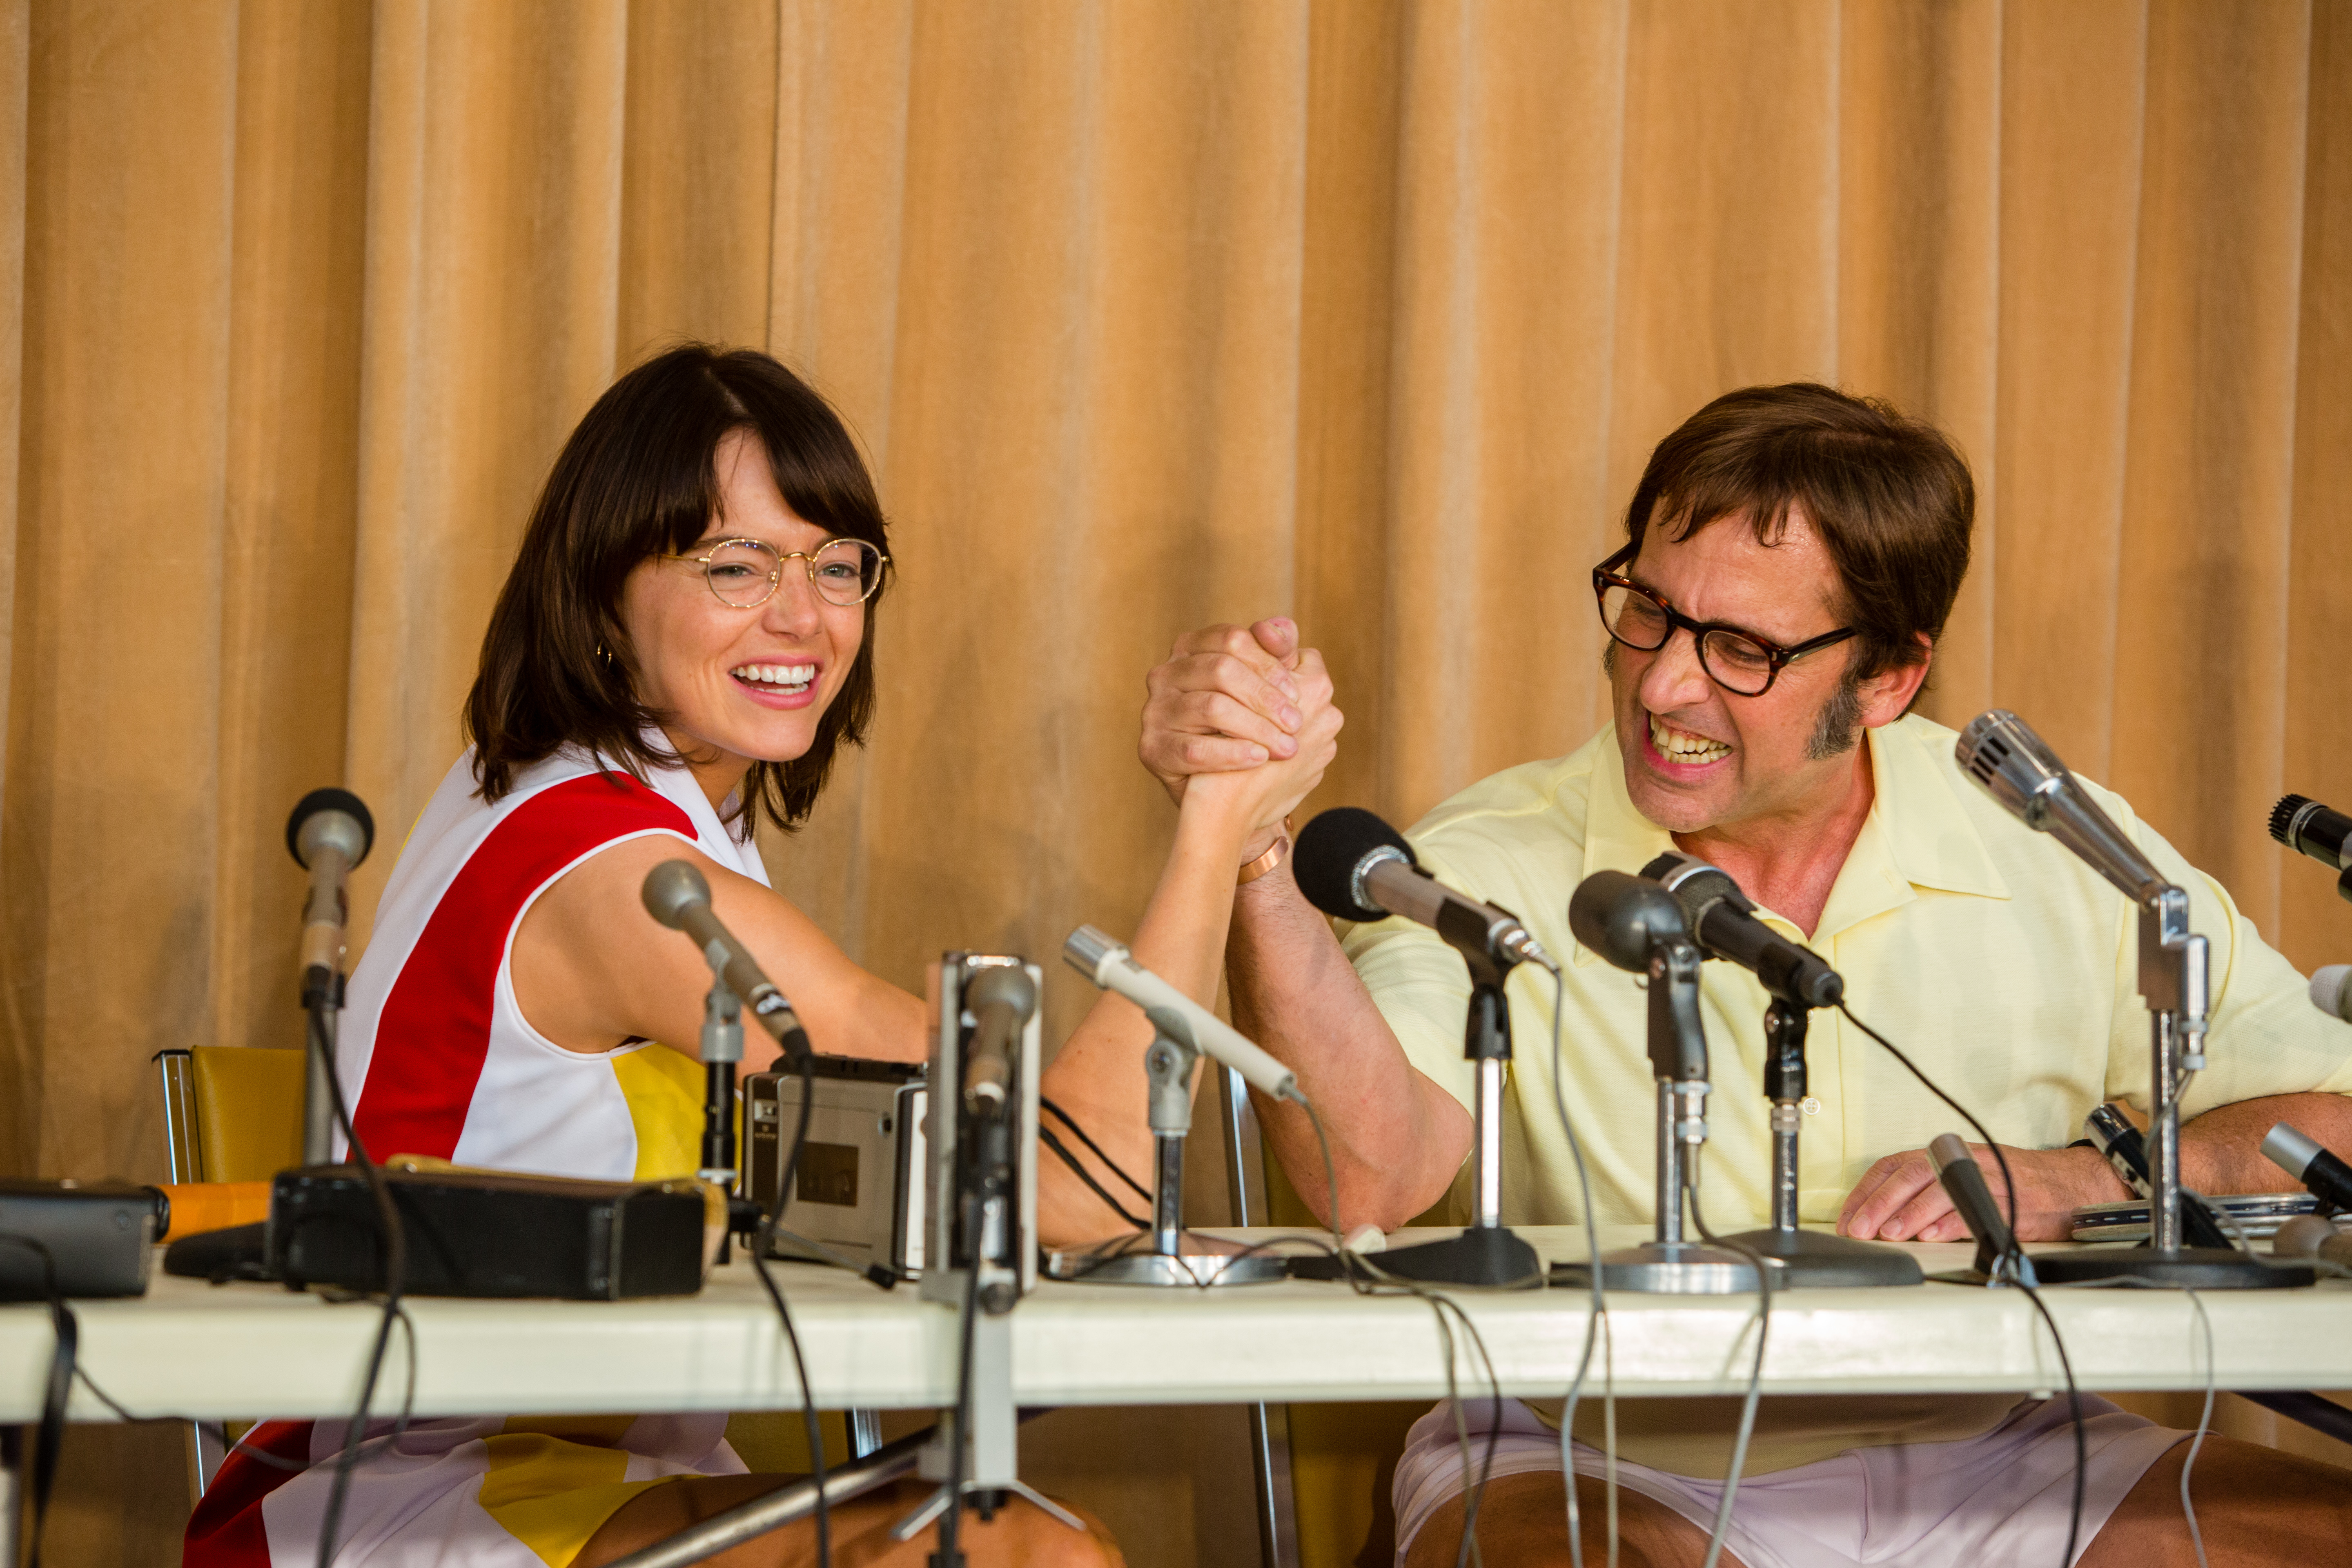 Emma Stone (Billie Jean King) e Steve Carell (Bobby Riggs) in una scena di La battaglia dei sessi. © 2017 Twentieth Century Fox Film Corporation All Rights Reserved